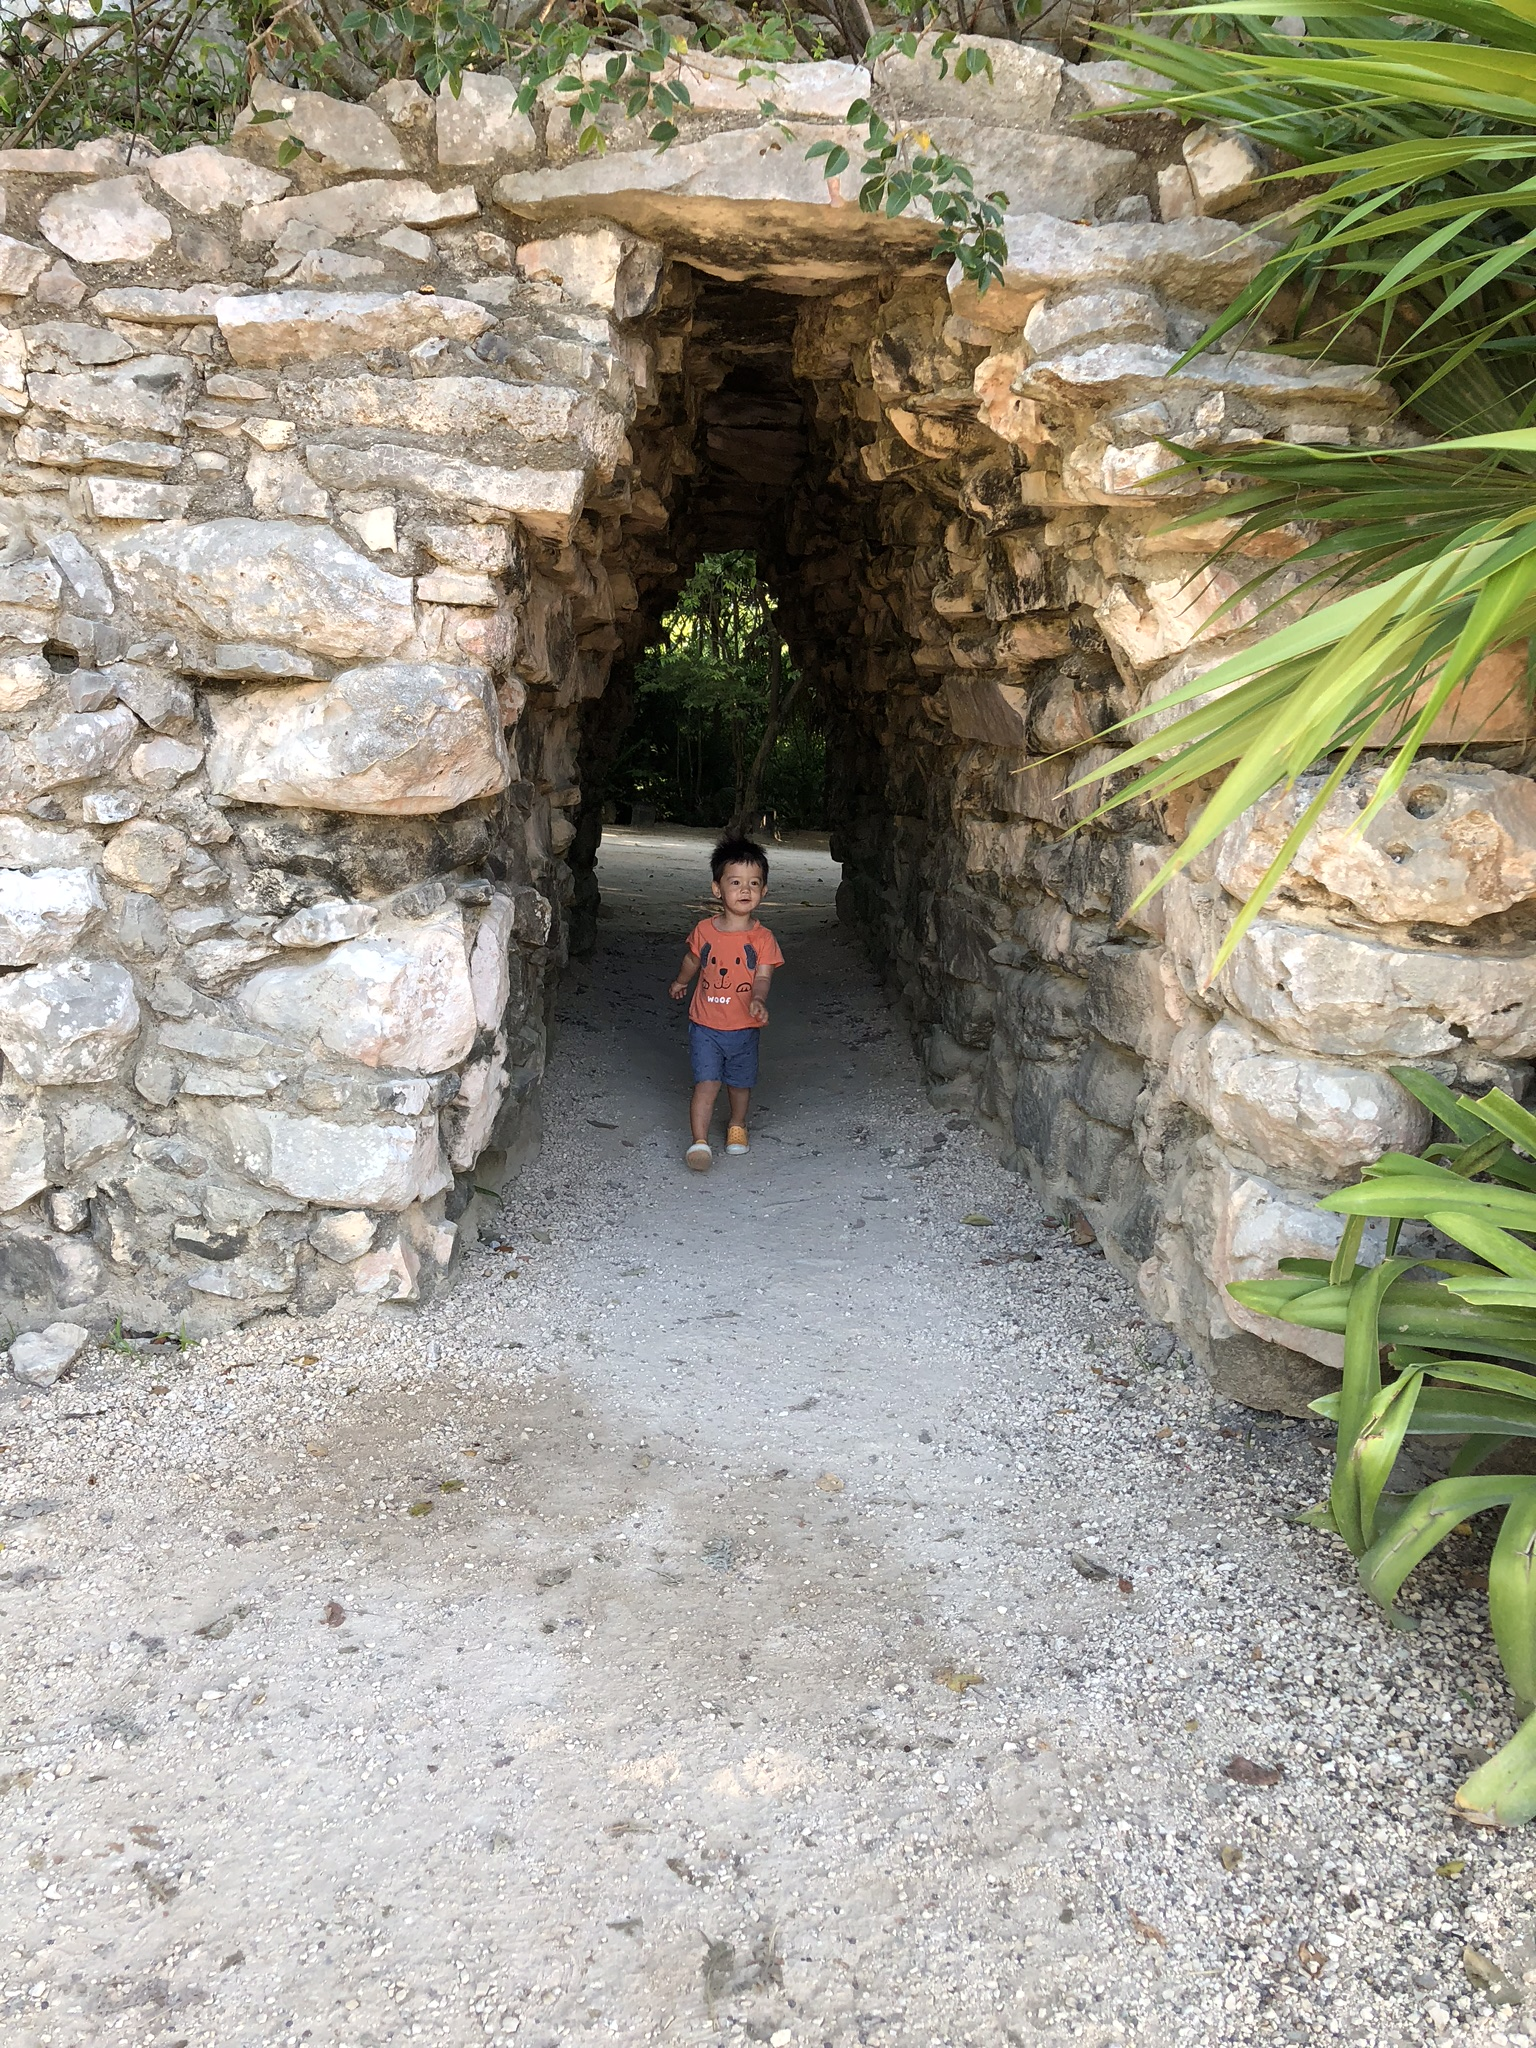 You can't climb on the ruins here, but there are still some fun nooks and crannies for the little ones to explore.